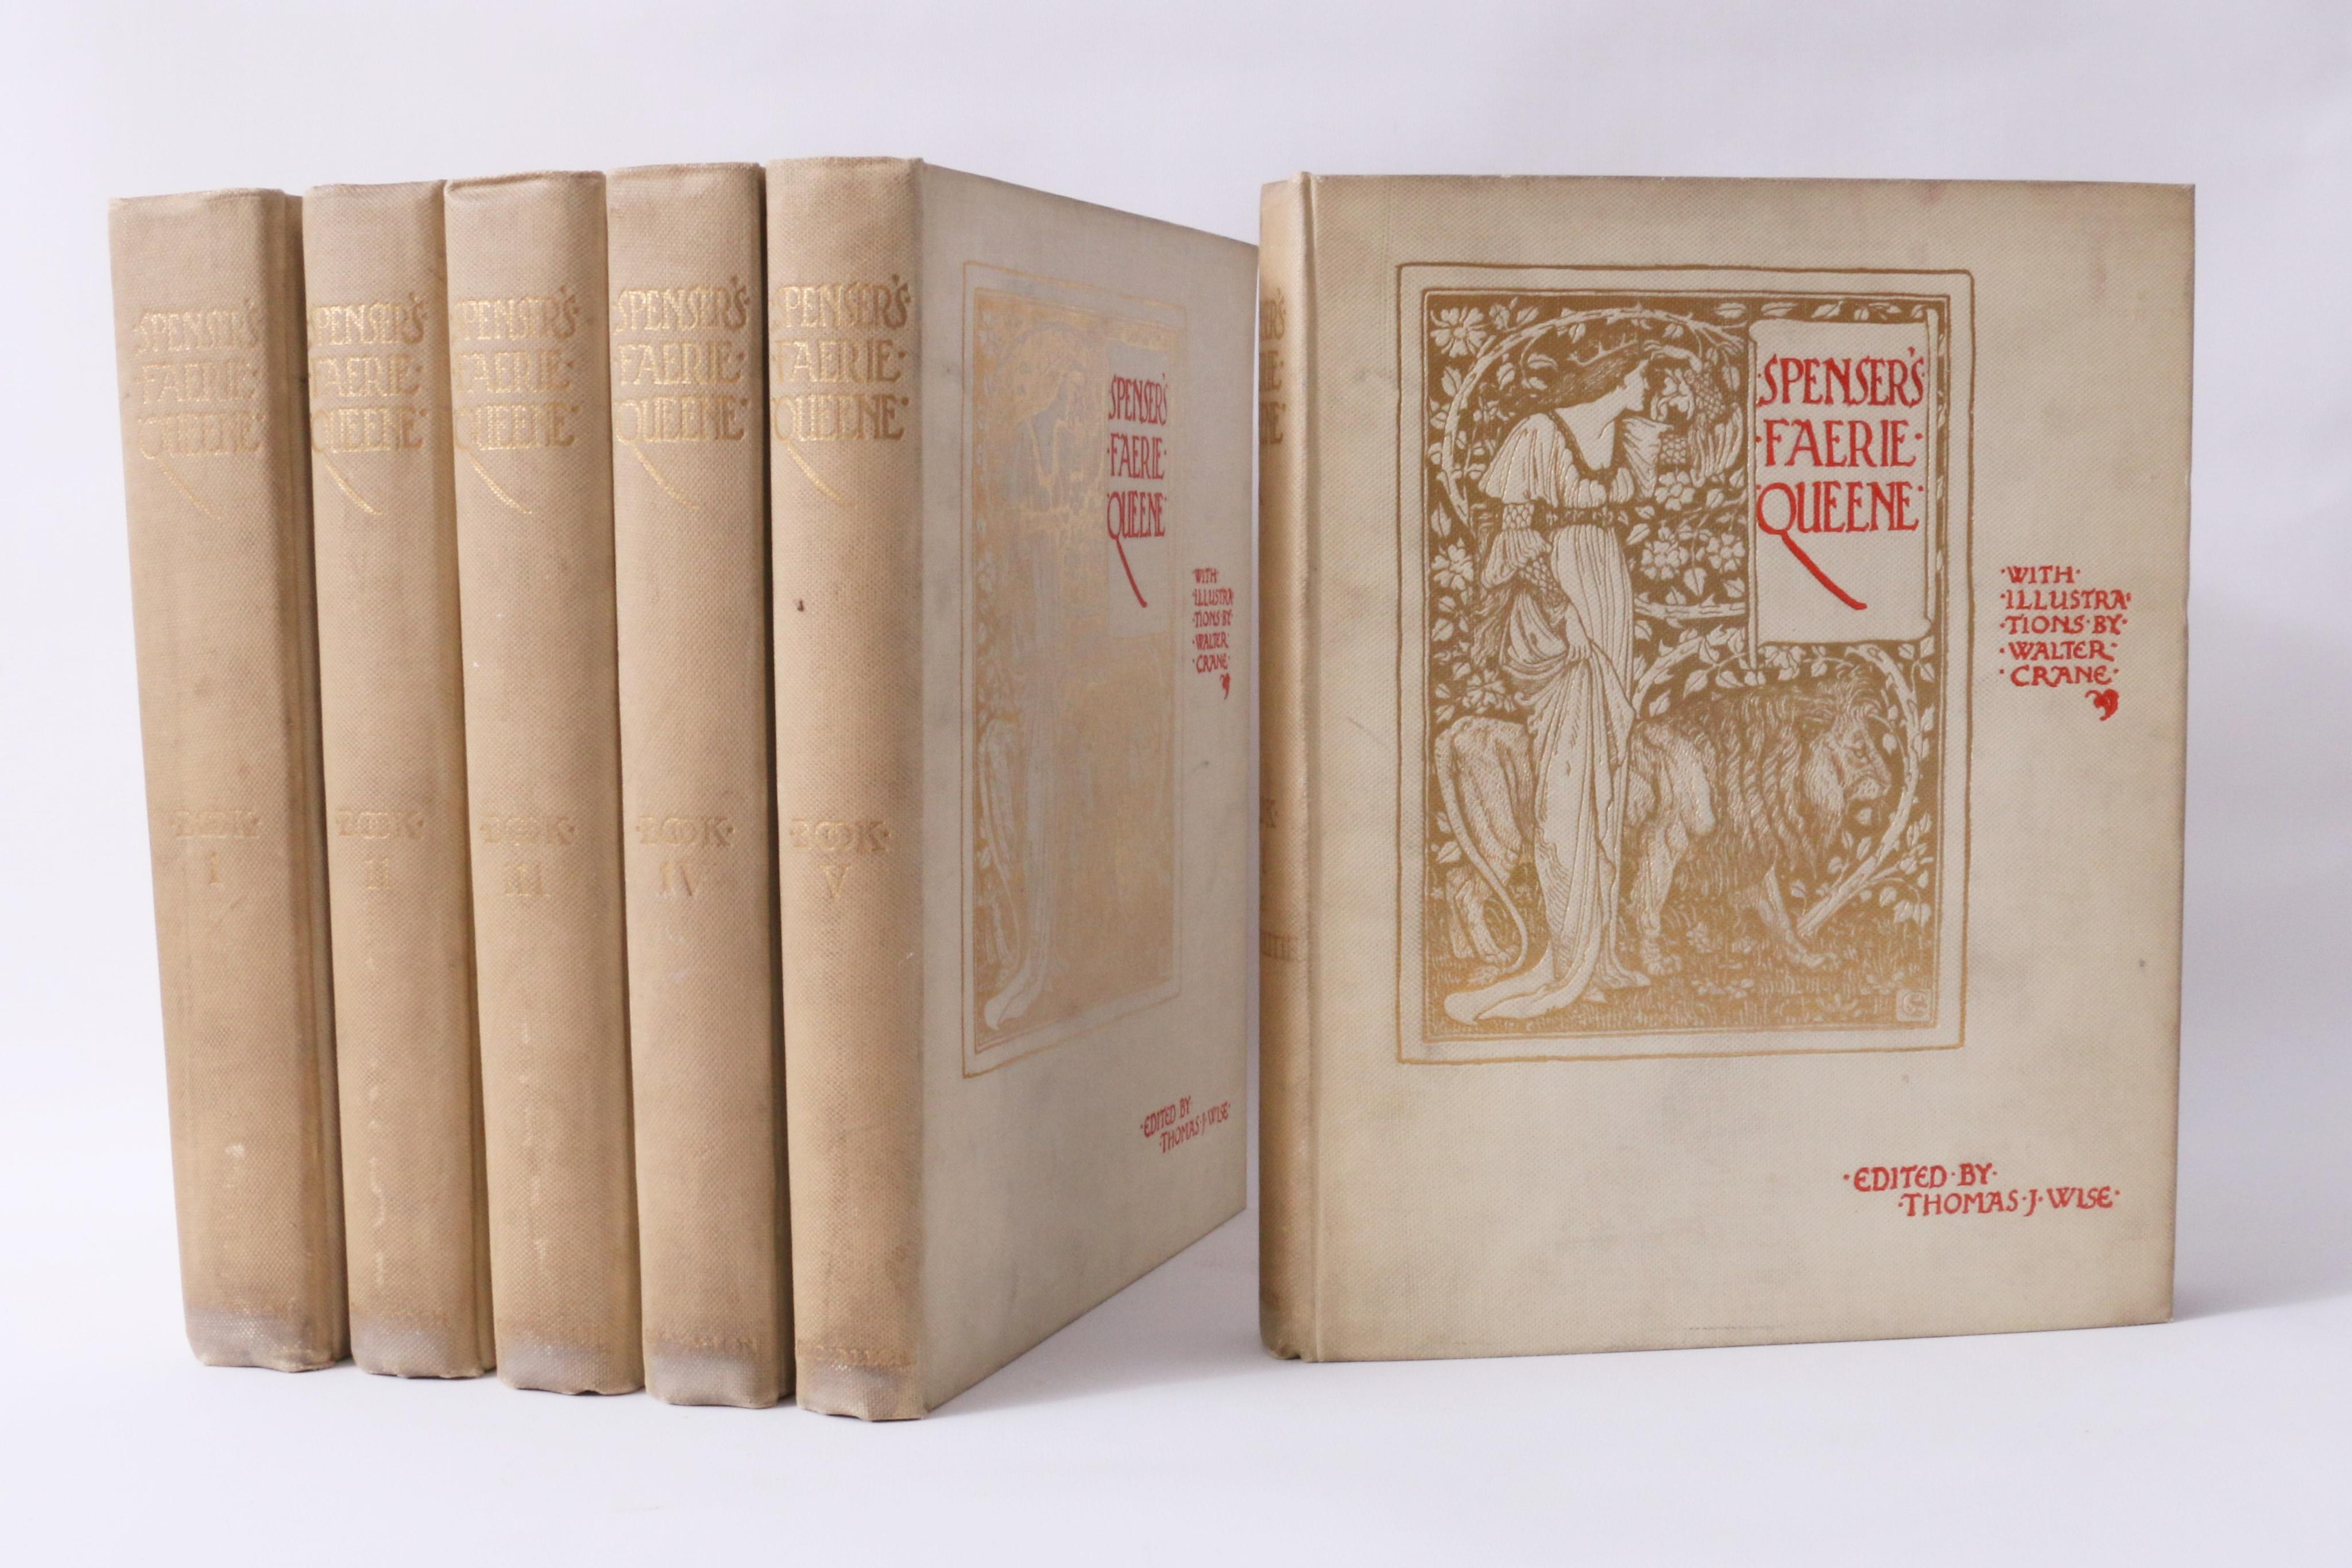 Edmund Spenser - Spenser's Faerie Queene - George Allen, 1897, First Thus.